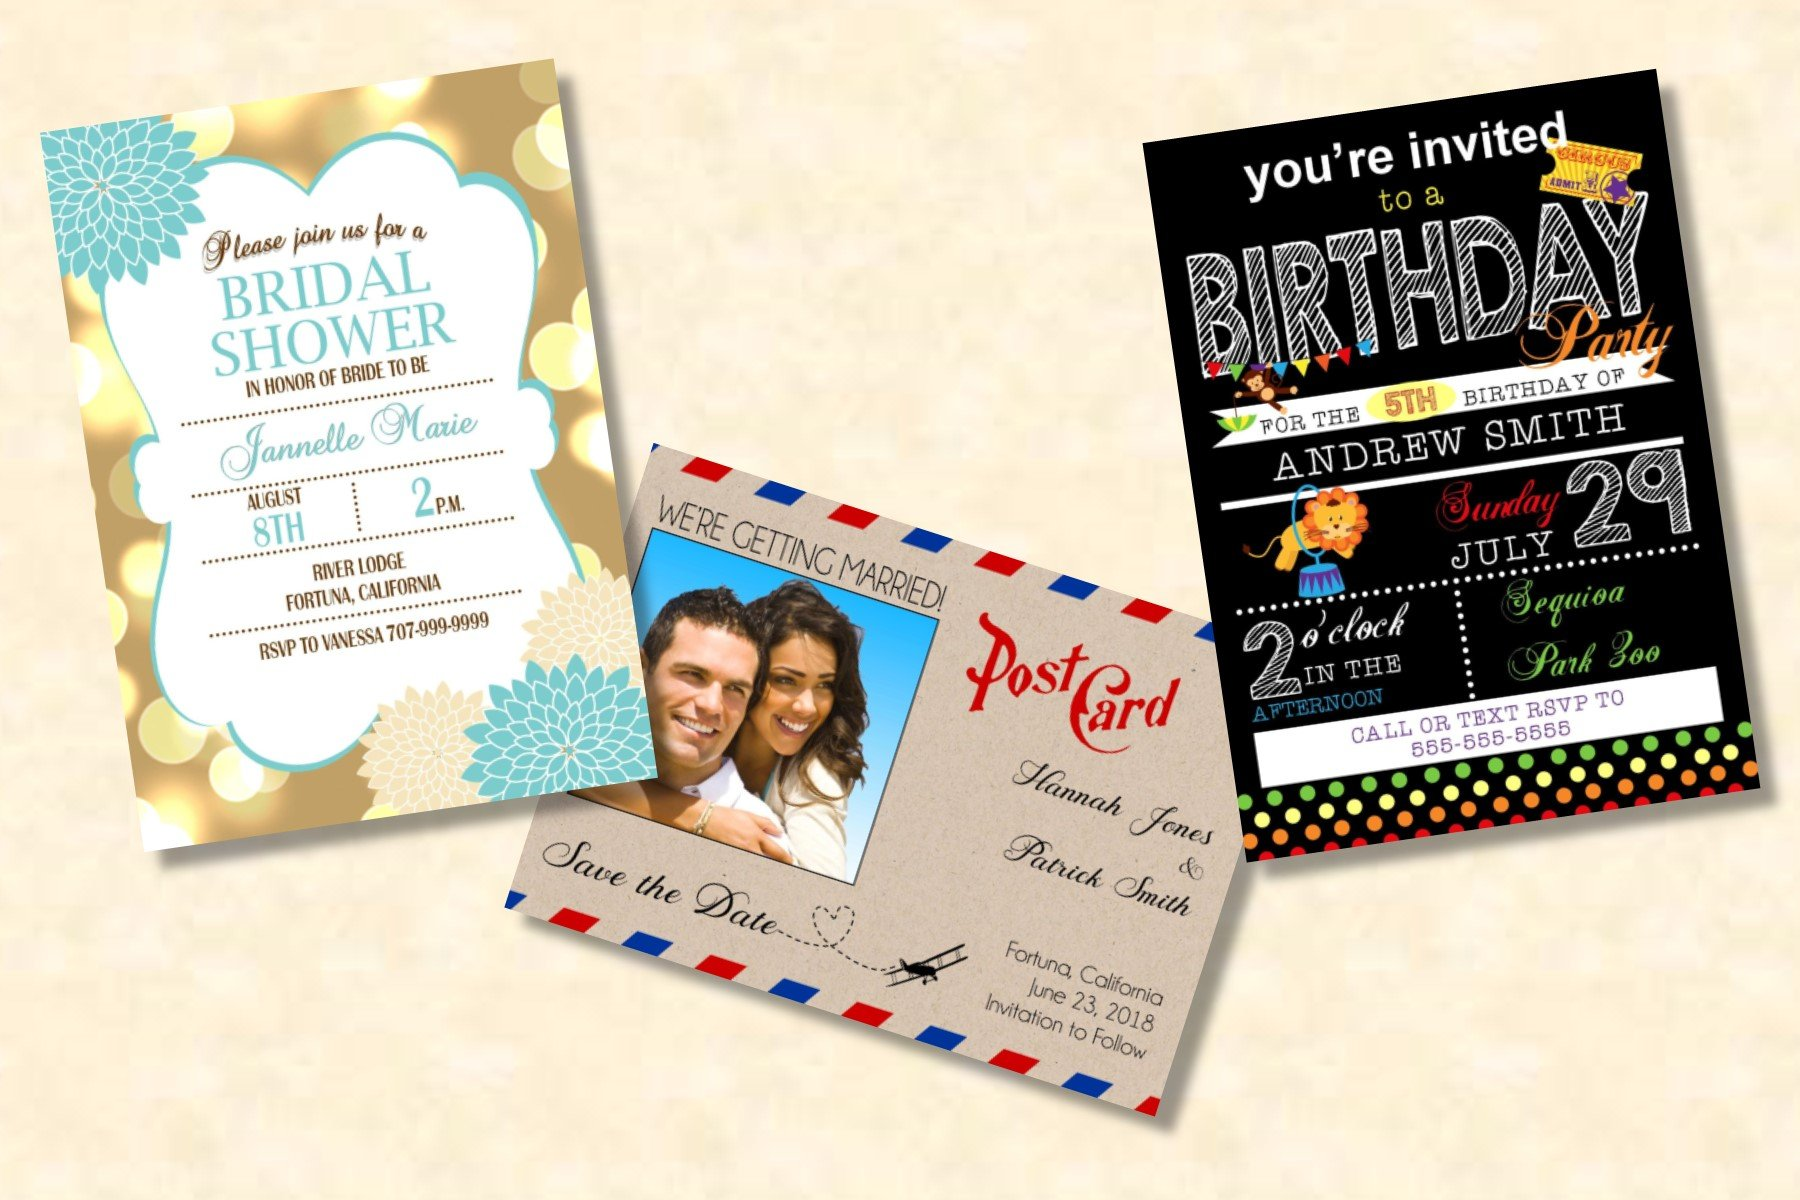 Postcard & Invitation Black Printing Options No Bleed Pricing 5.5x8.5